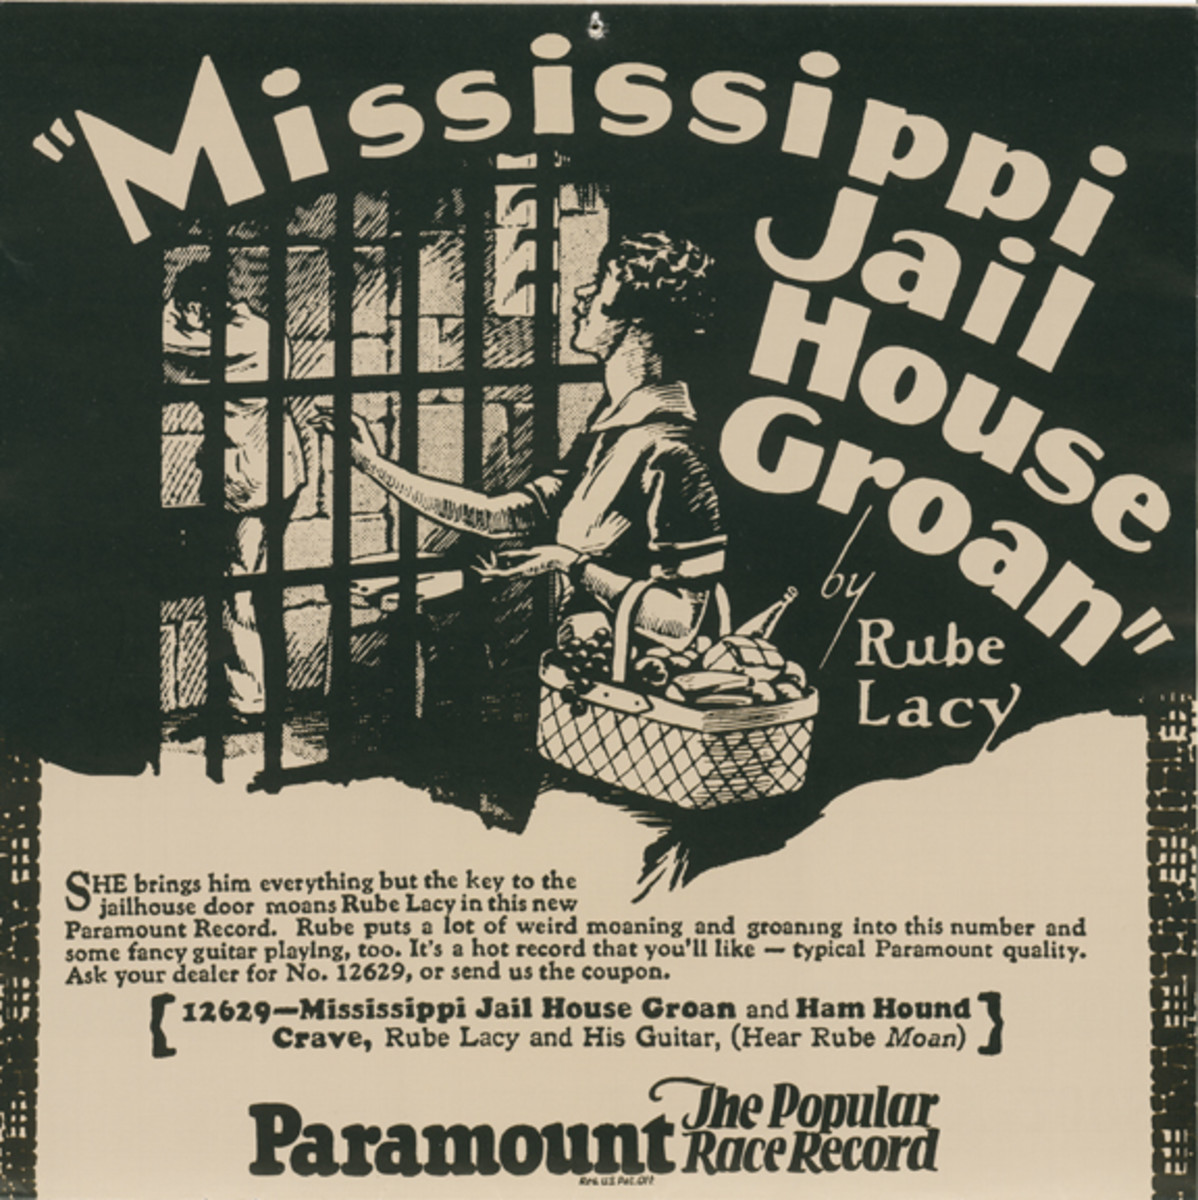 Mississippi Jail House Groan by The Rev. Rube Lacy